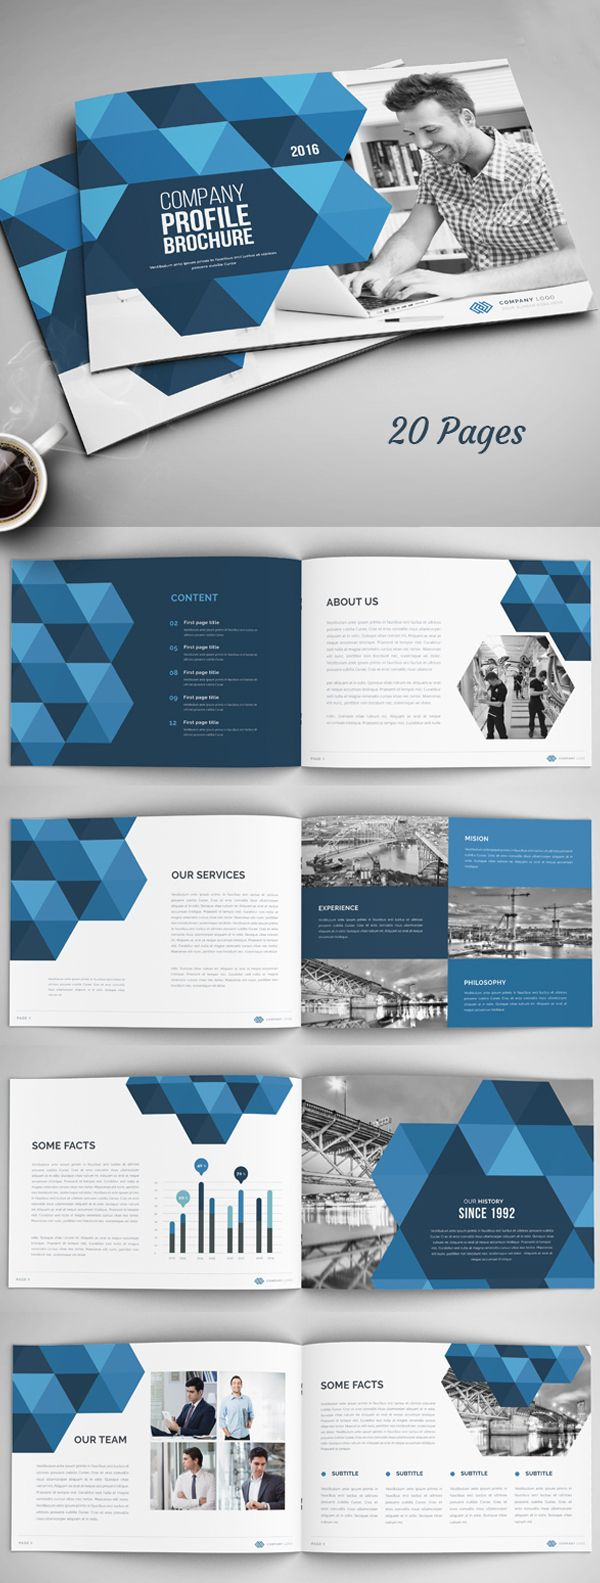 20 Pages Annual Report Company Profile Brochure Template Brochure